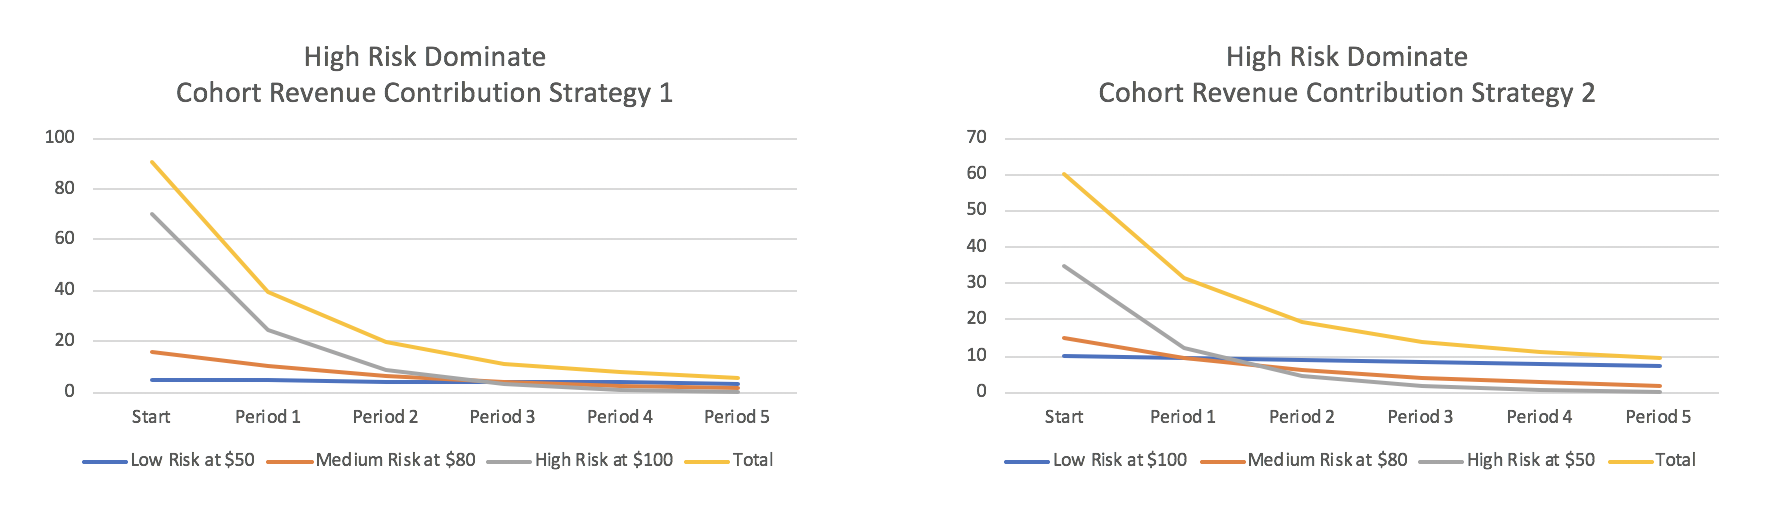 Cohort Revenue Under Different Pricing Strategies High Risk Dominate